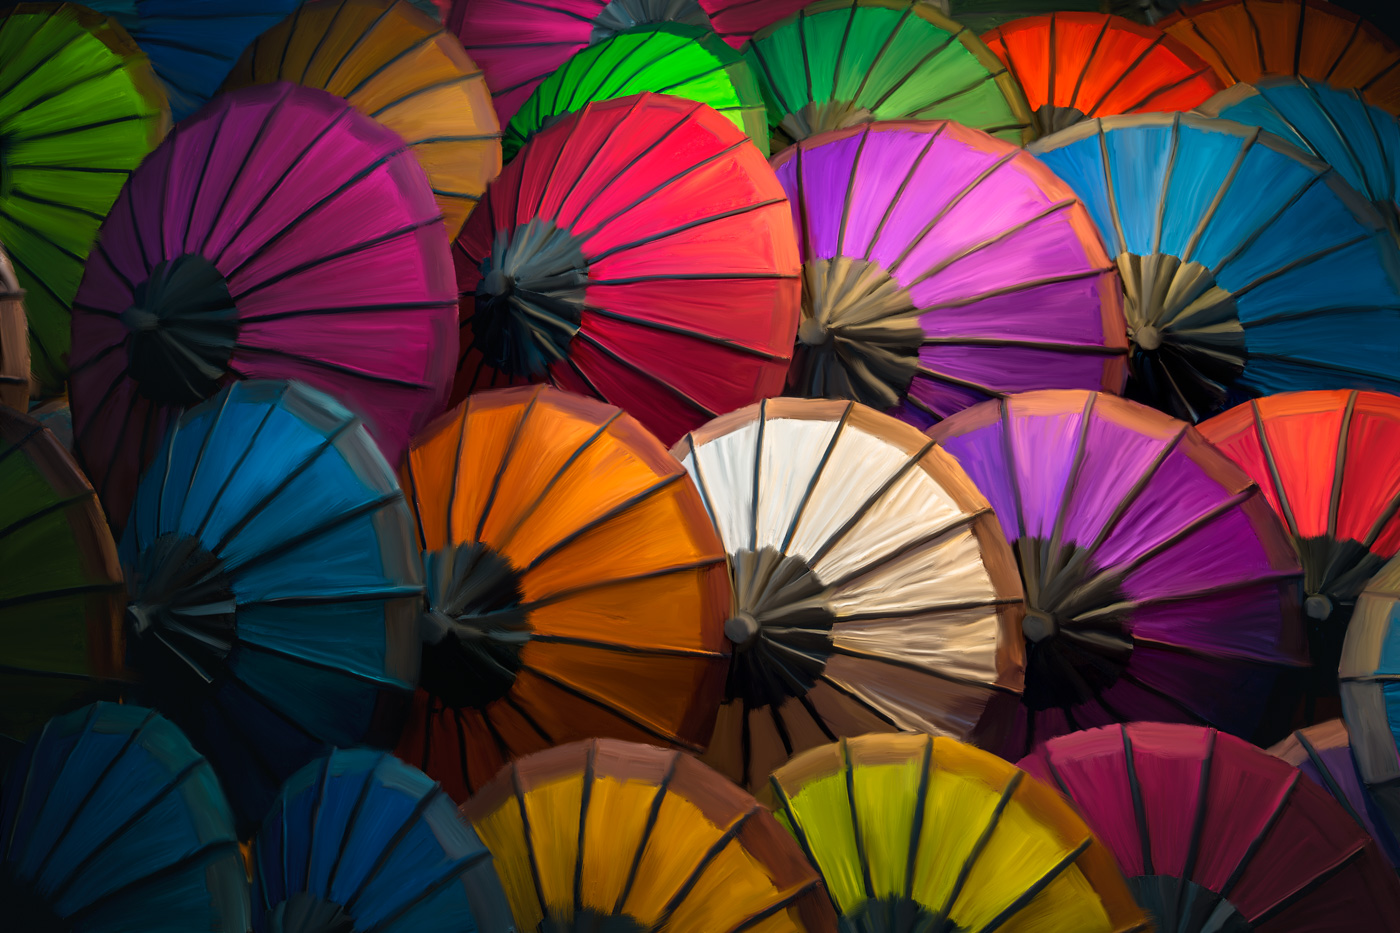 Colorful paper umbrella display. Laos